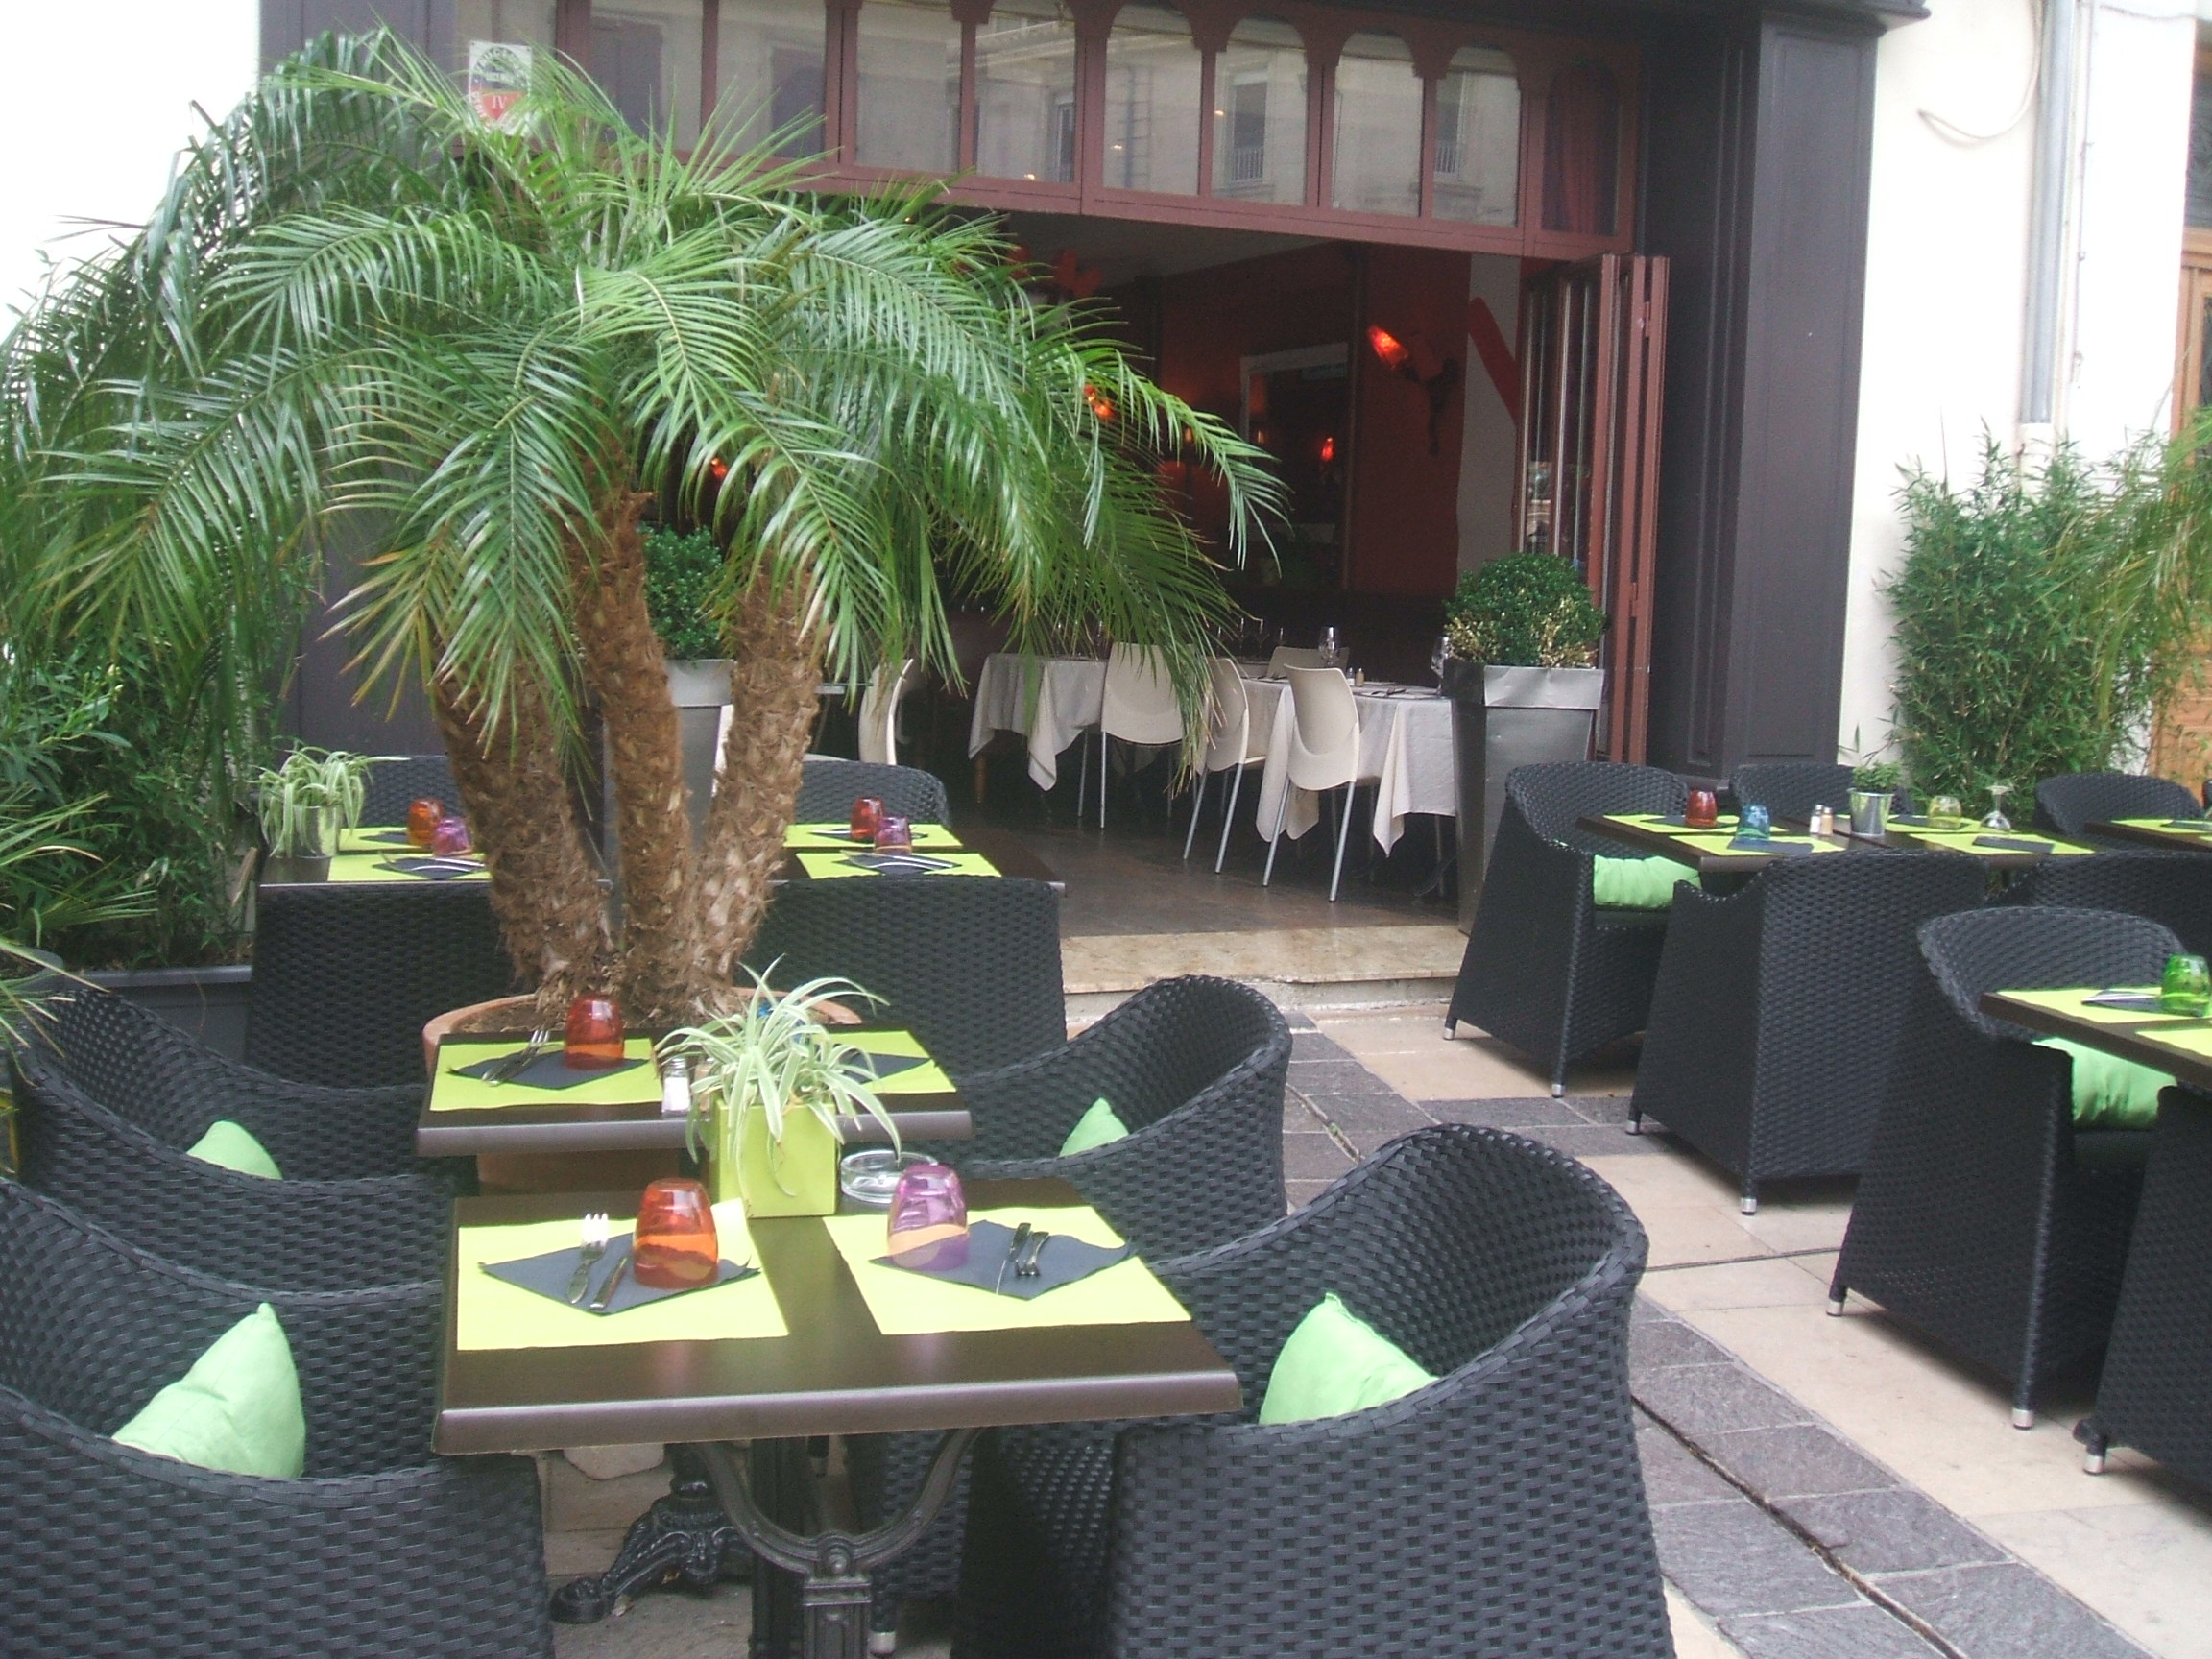 Am nagement int rieur et ext rieur au restaurant le crillon for Amenagement terrasse restaurant